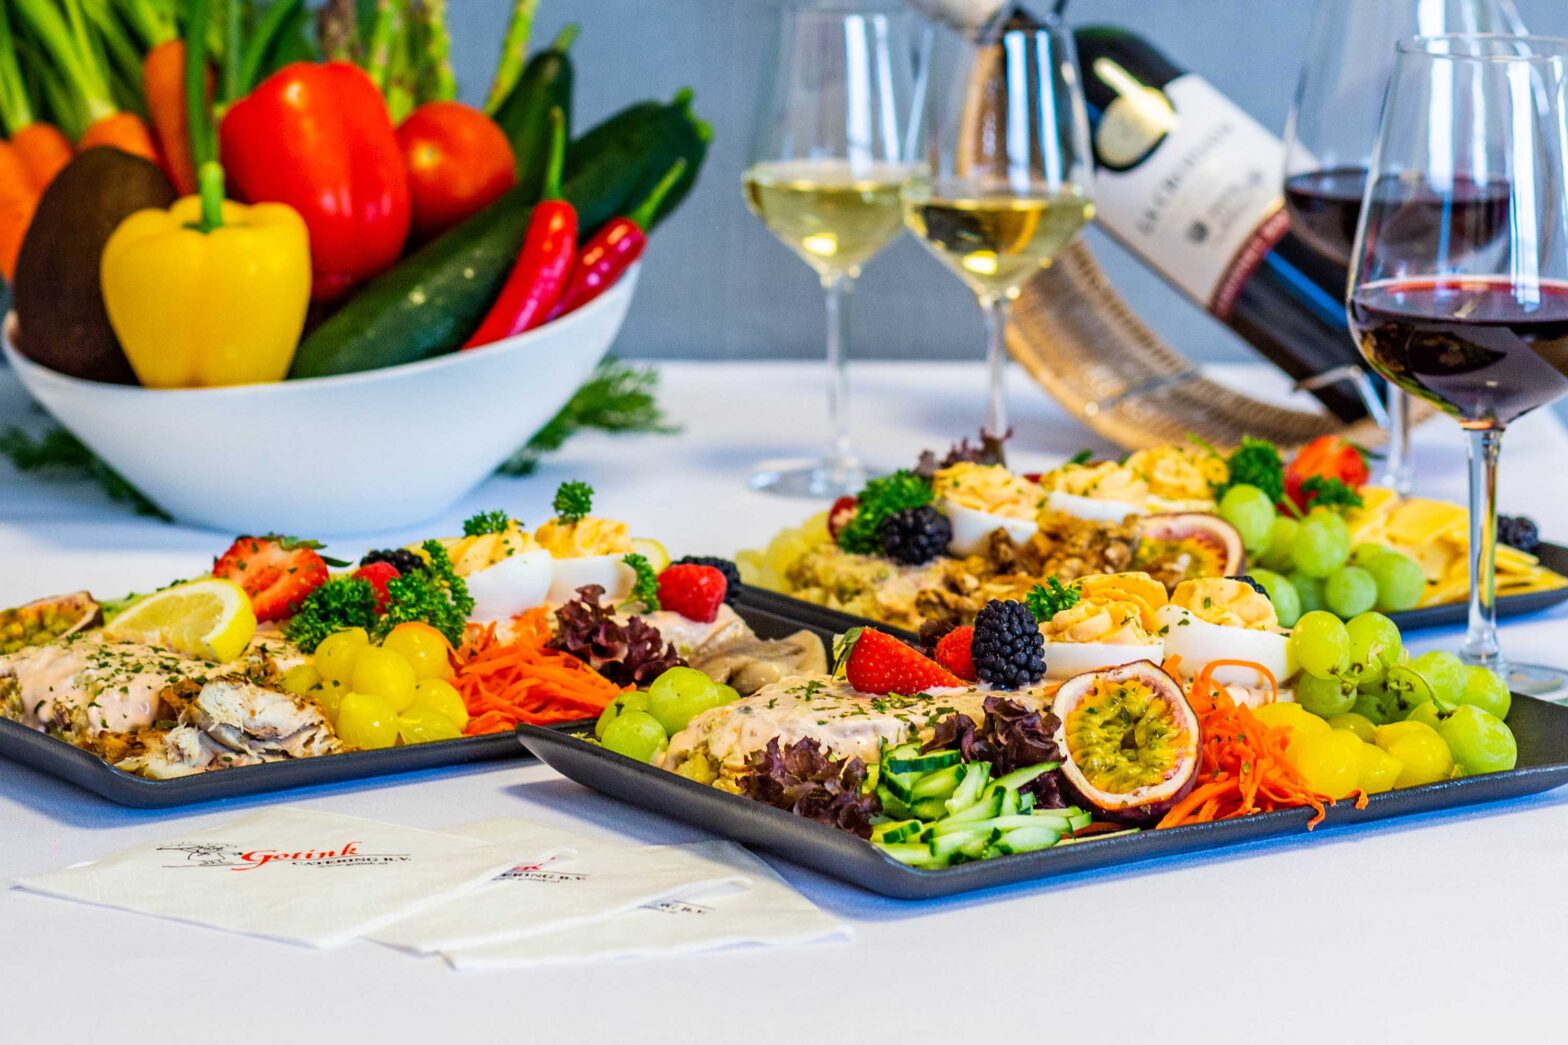 Gotink Catering Salades